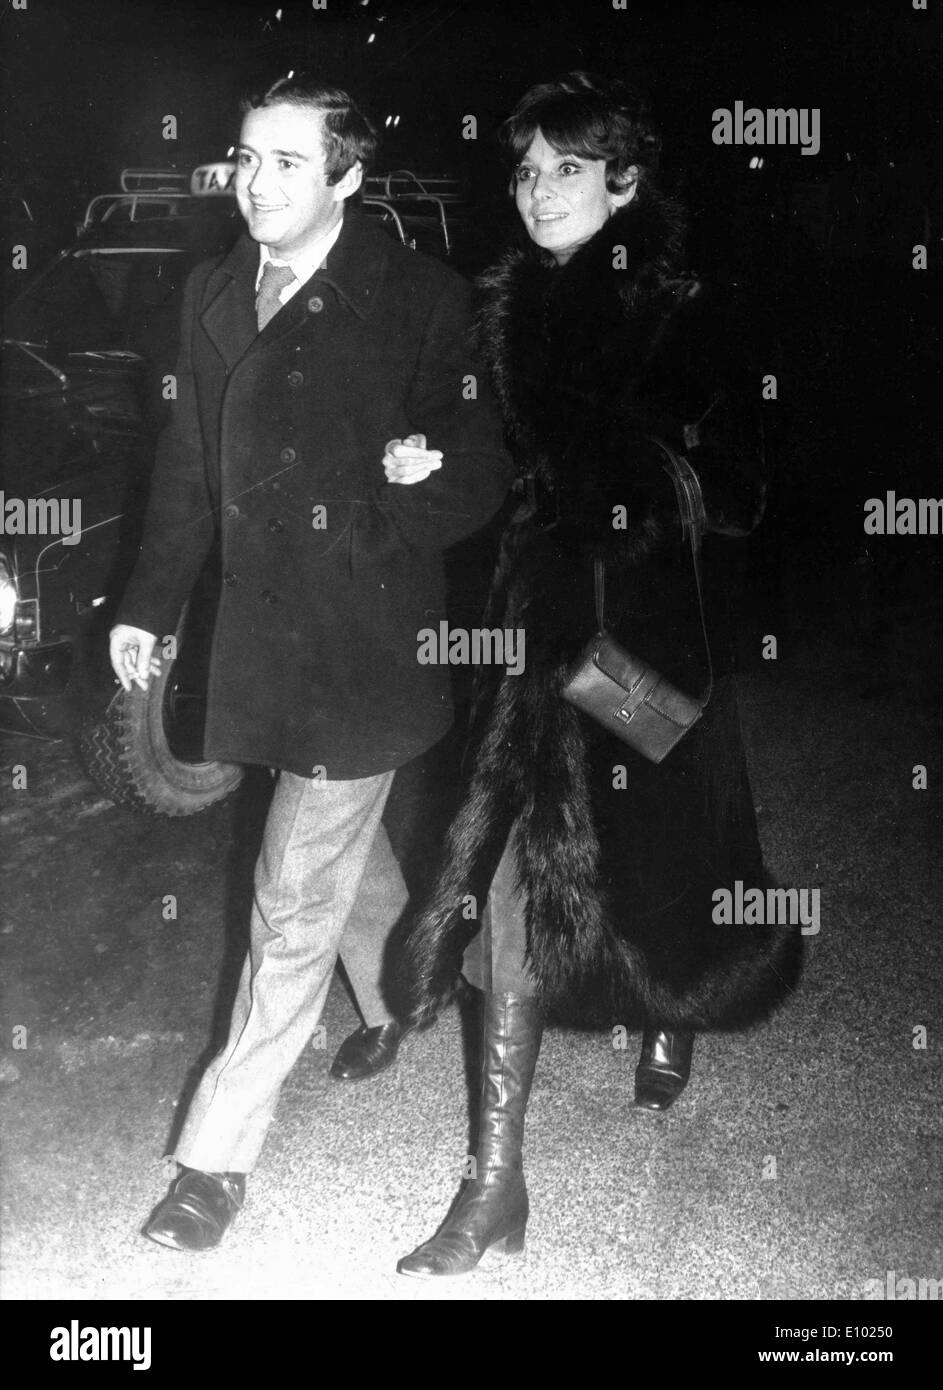 Actress Audrey Hepburn on holiday with Andrea Dotti - Stock Image